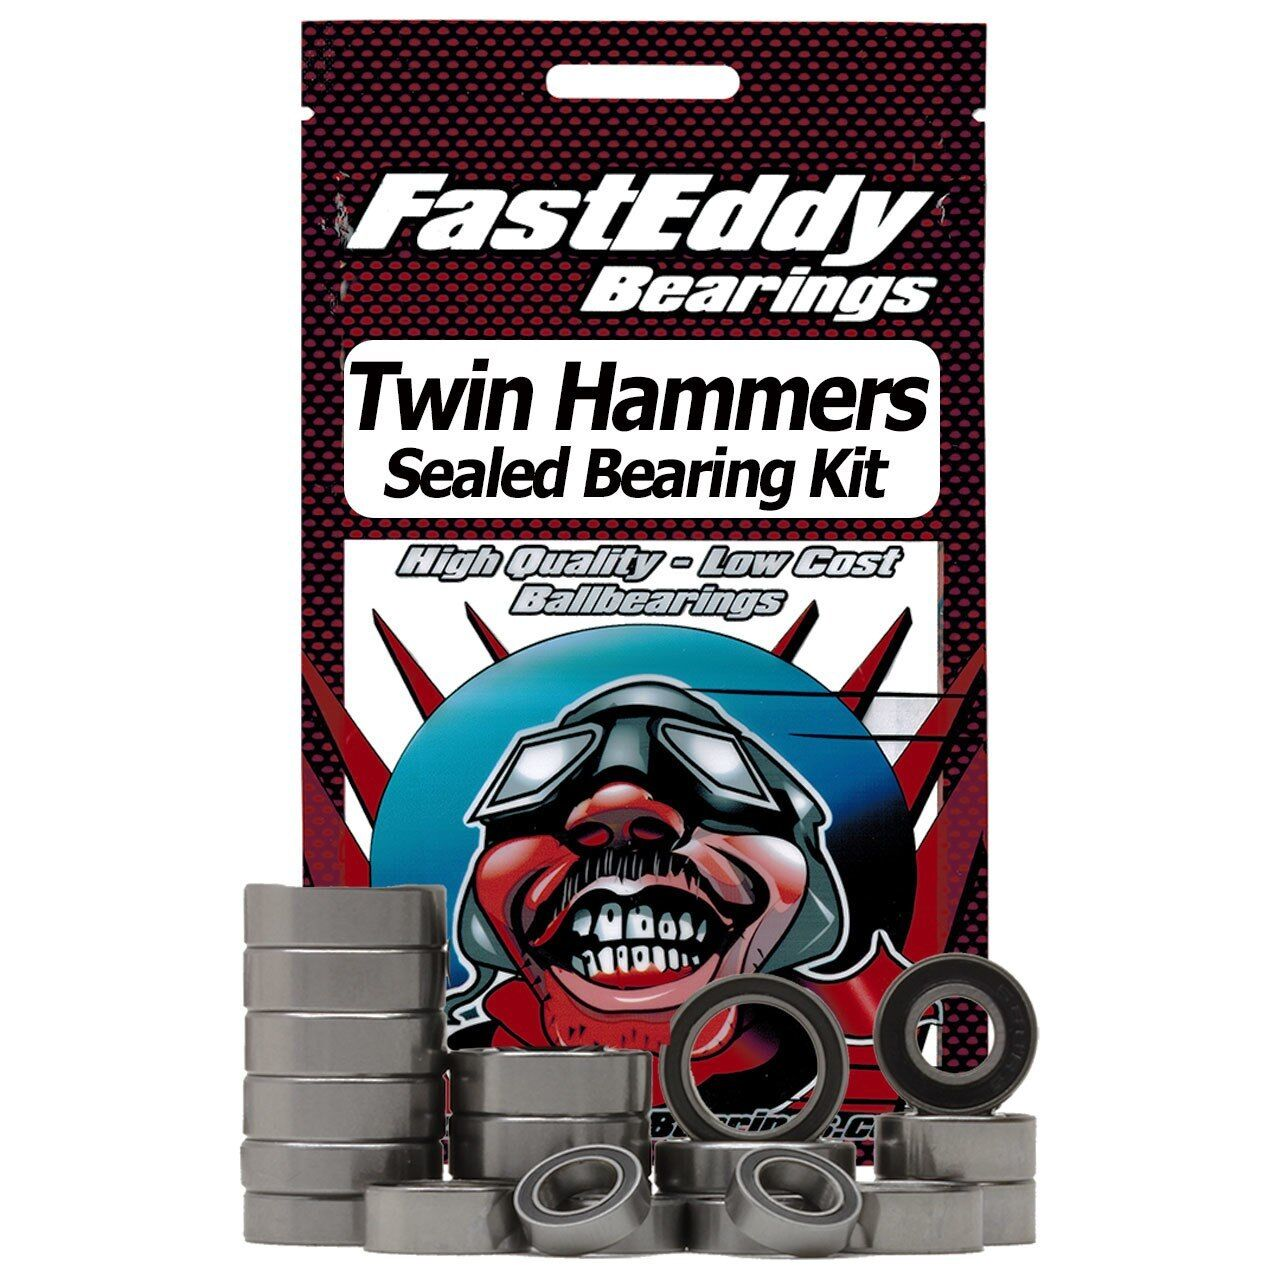 Team FastEddy Fast Eddy Full SEALED Bearing Kit for the VATERRA TWIN HAMMERS